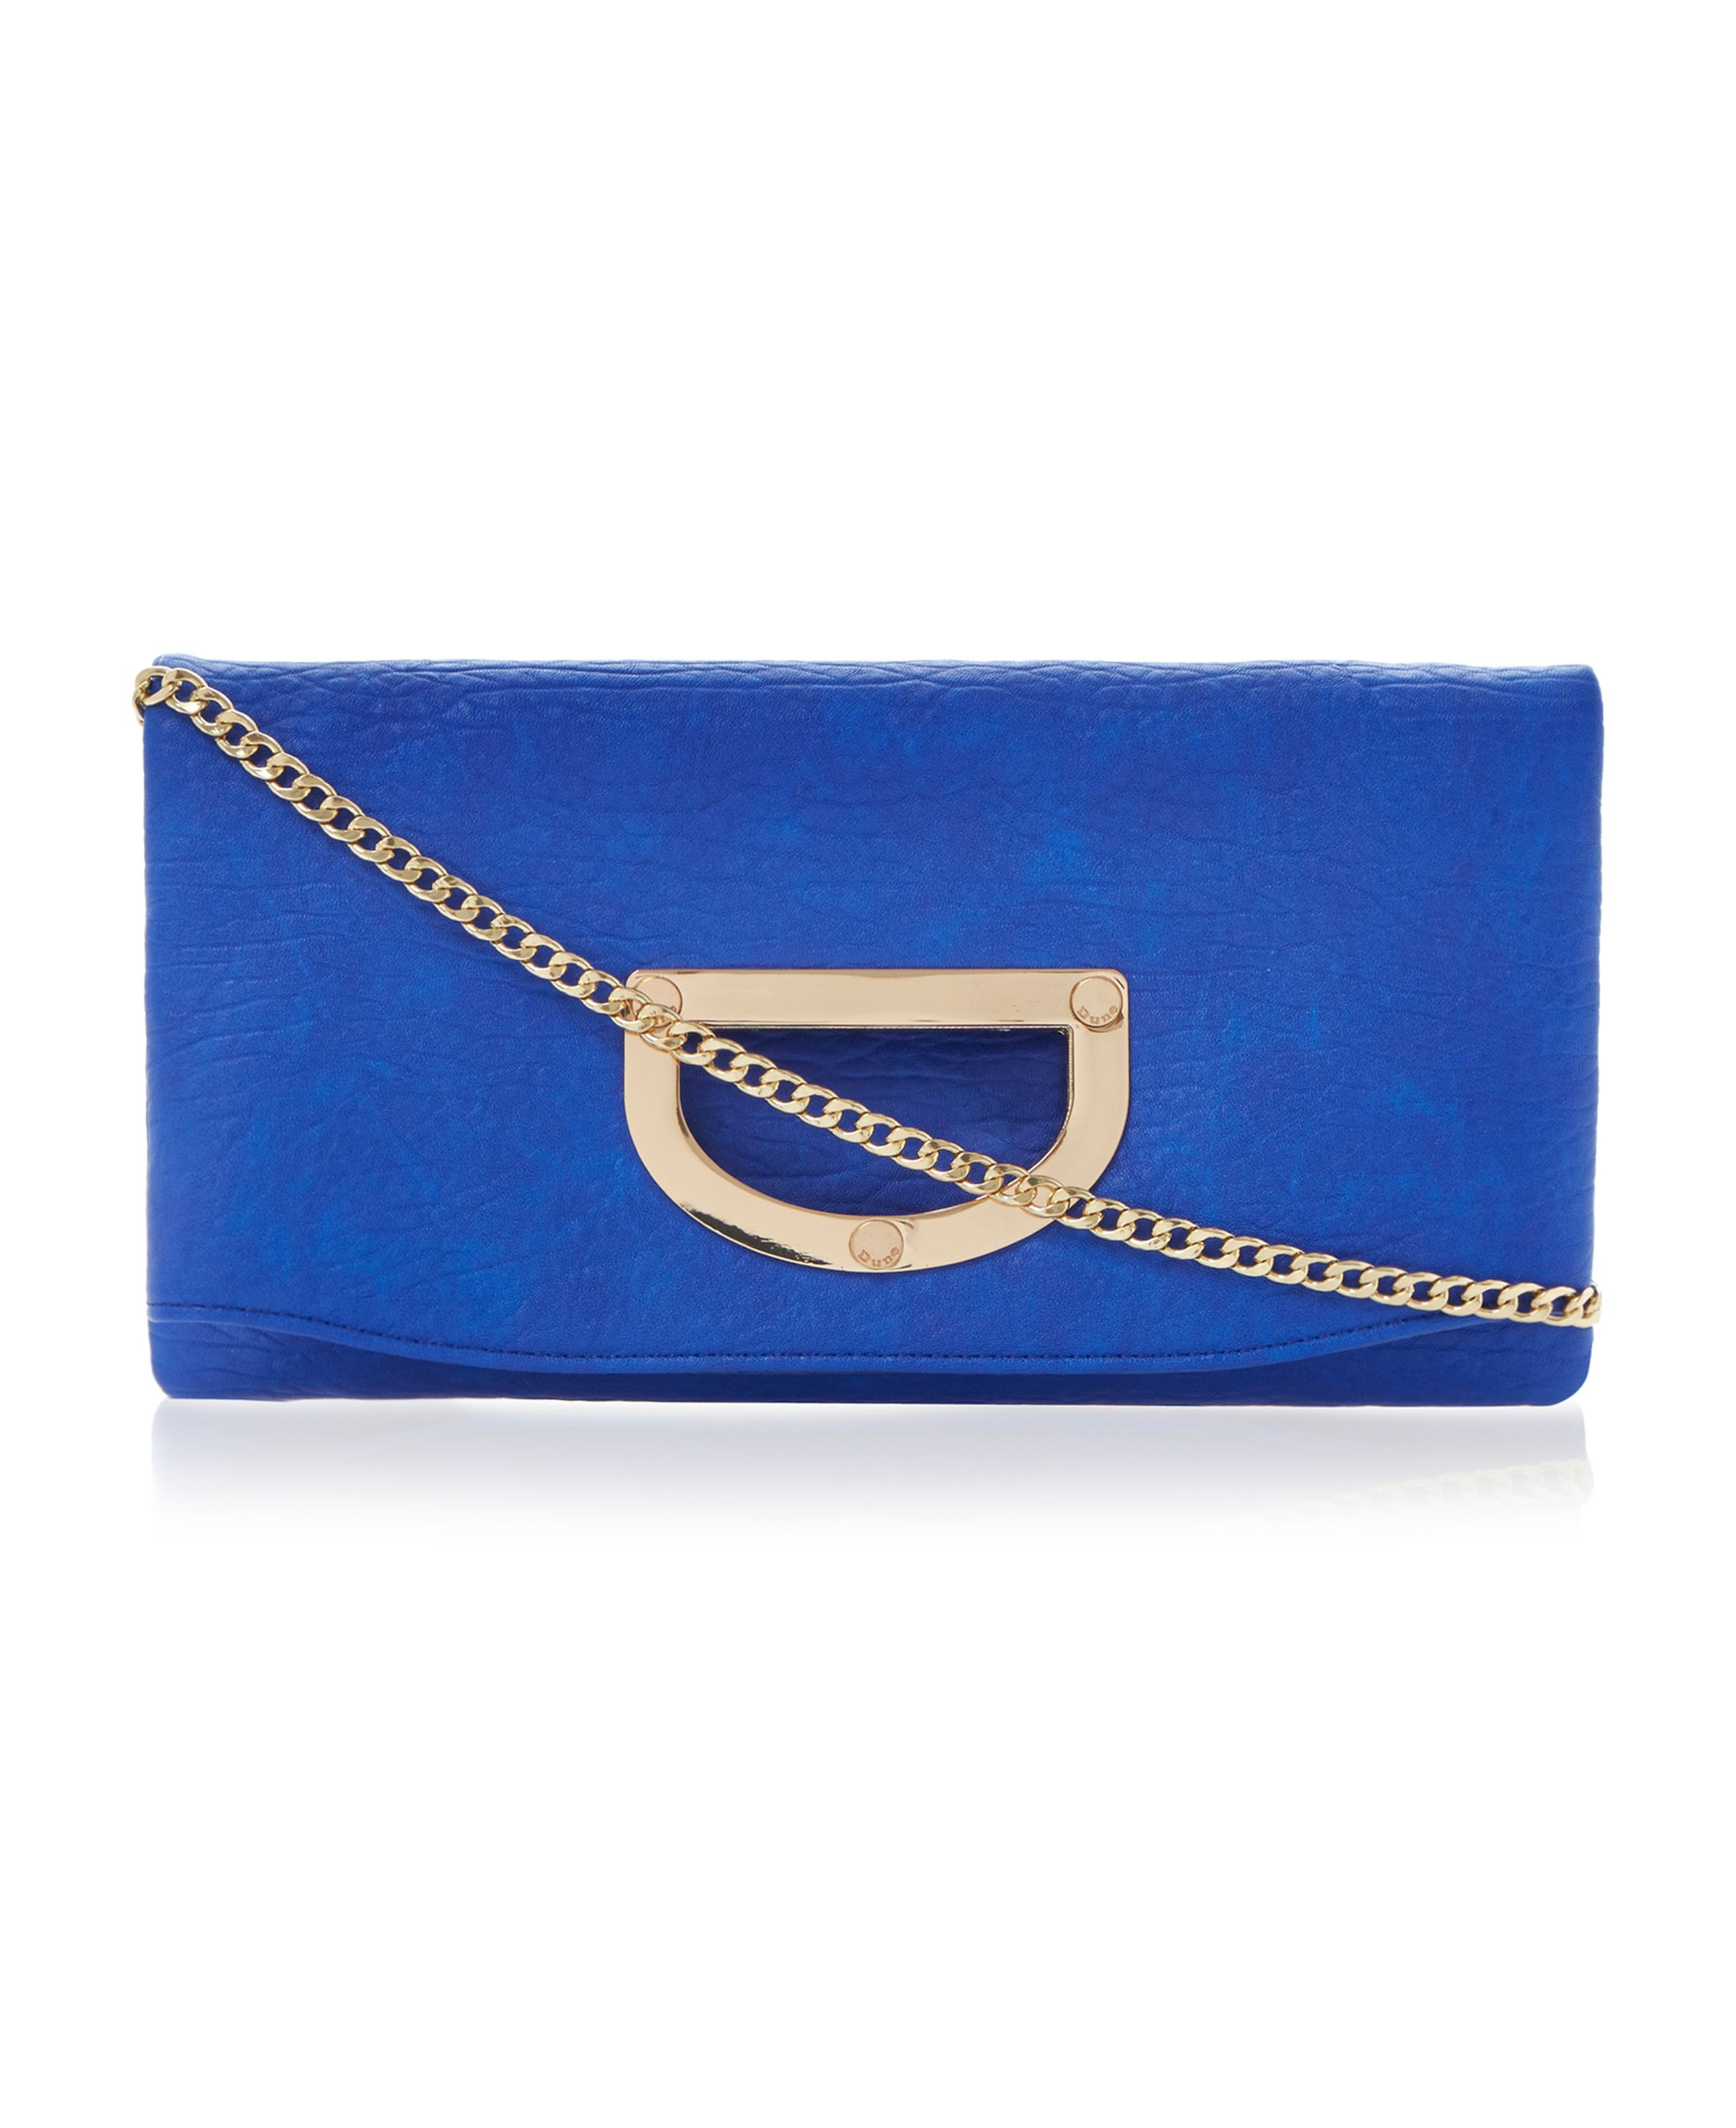 Elite clutch bag